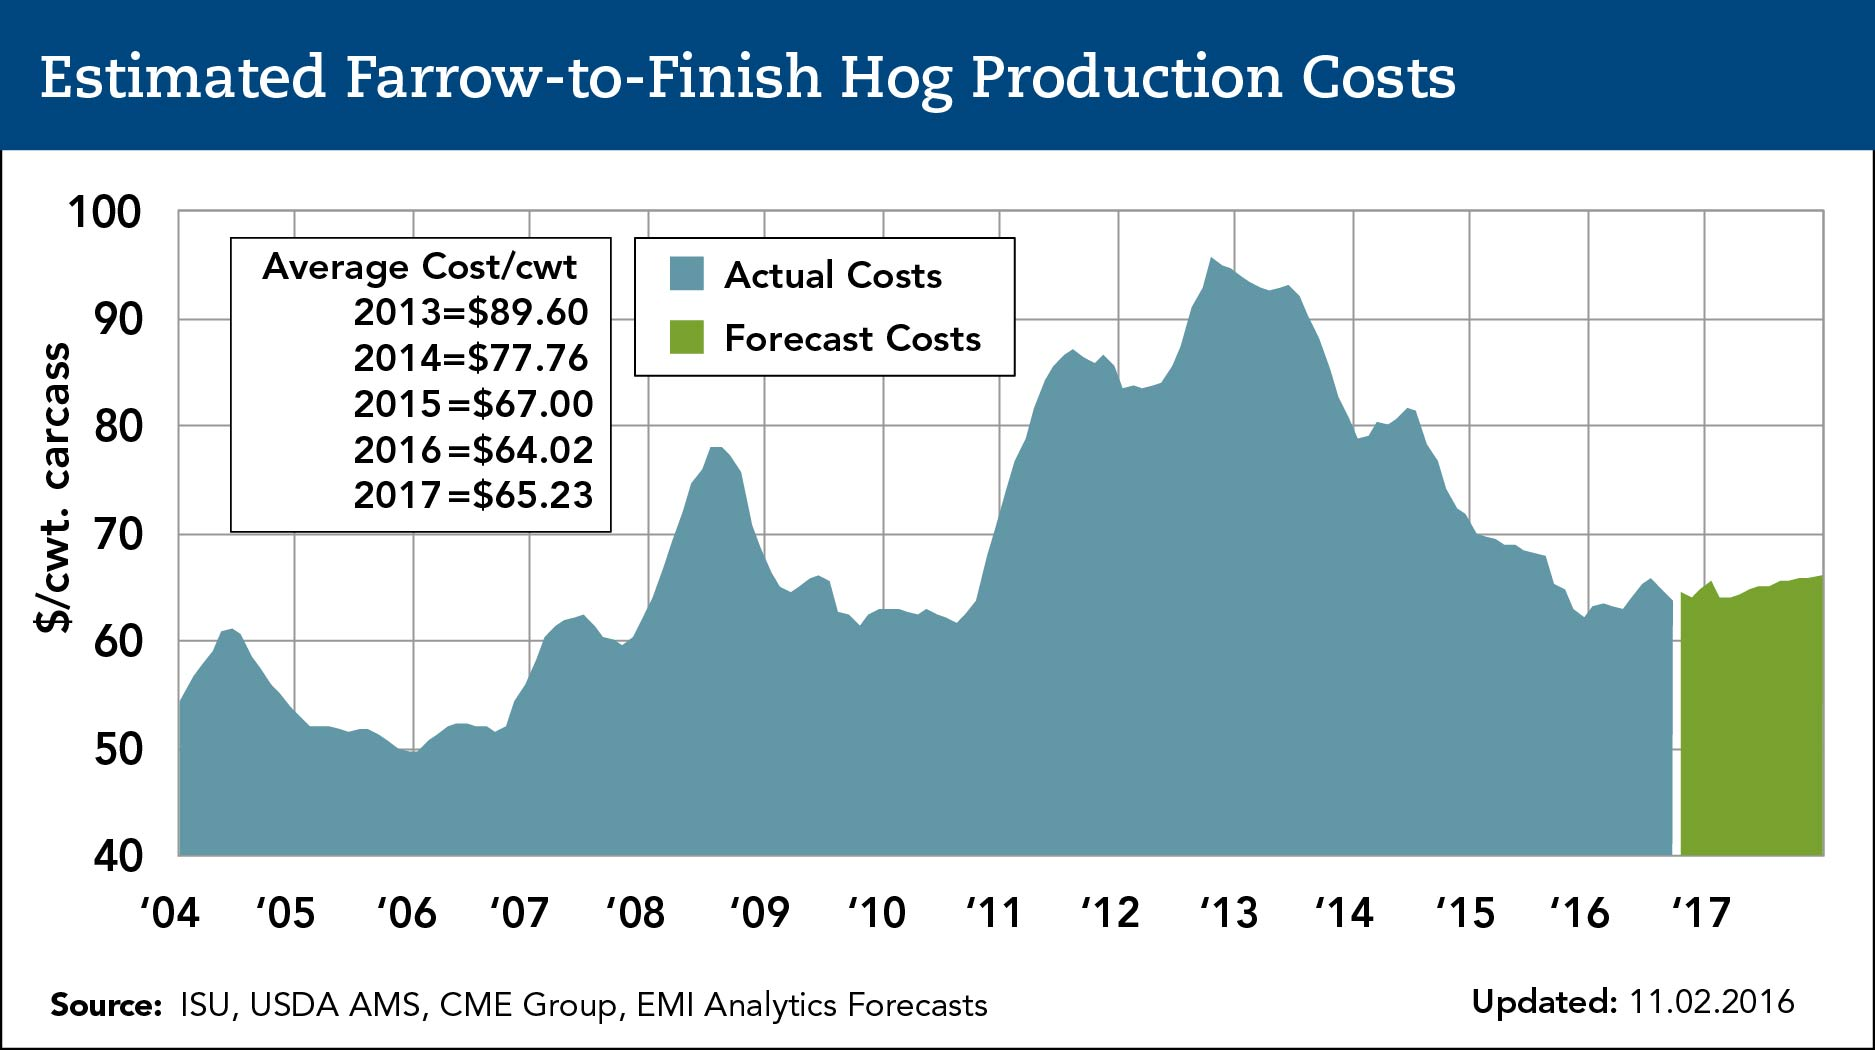 estimated farrow-to-finish-hog production costs